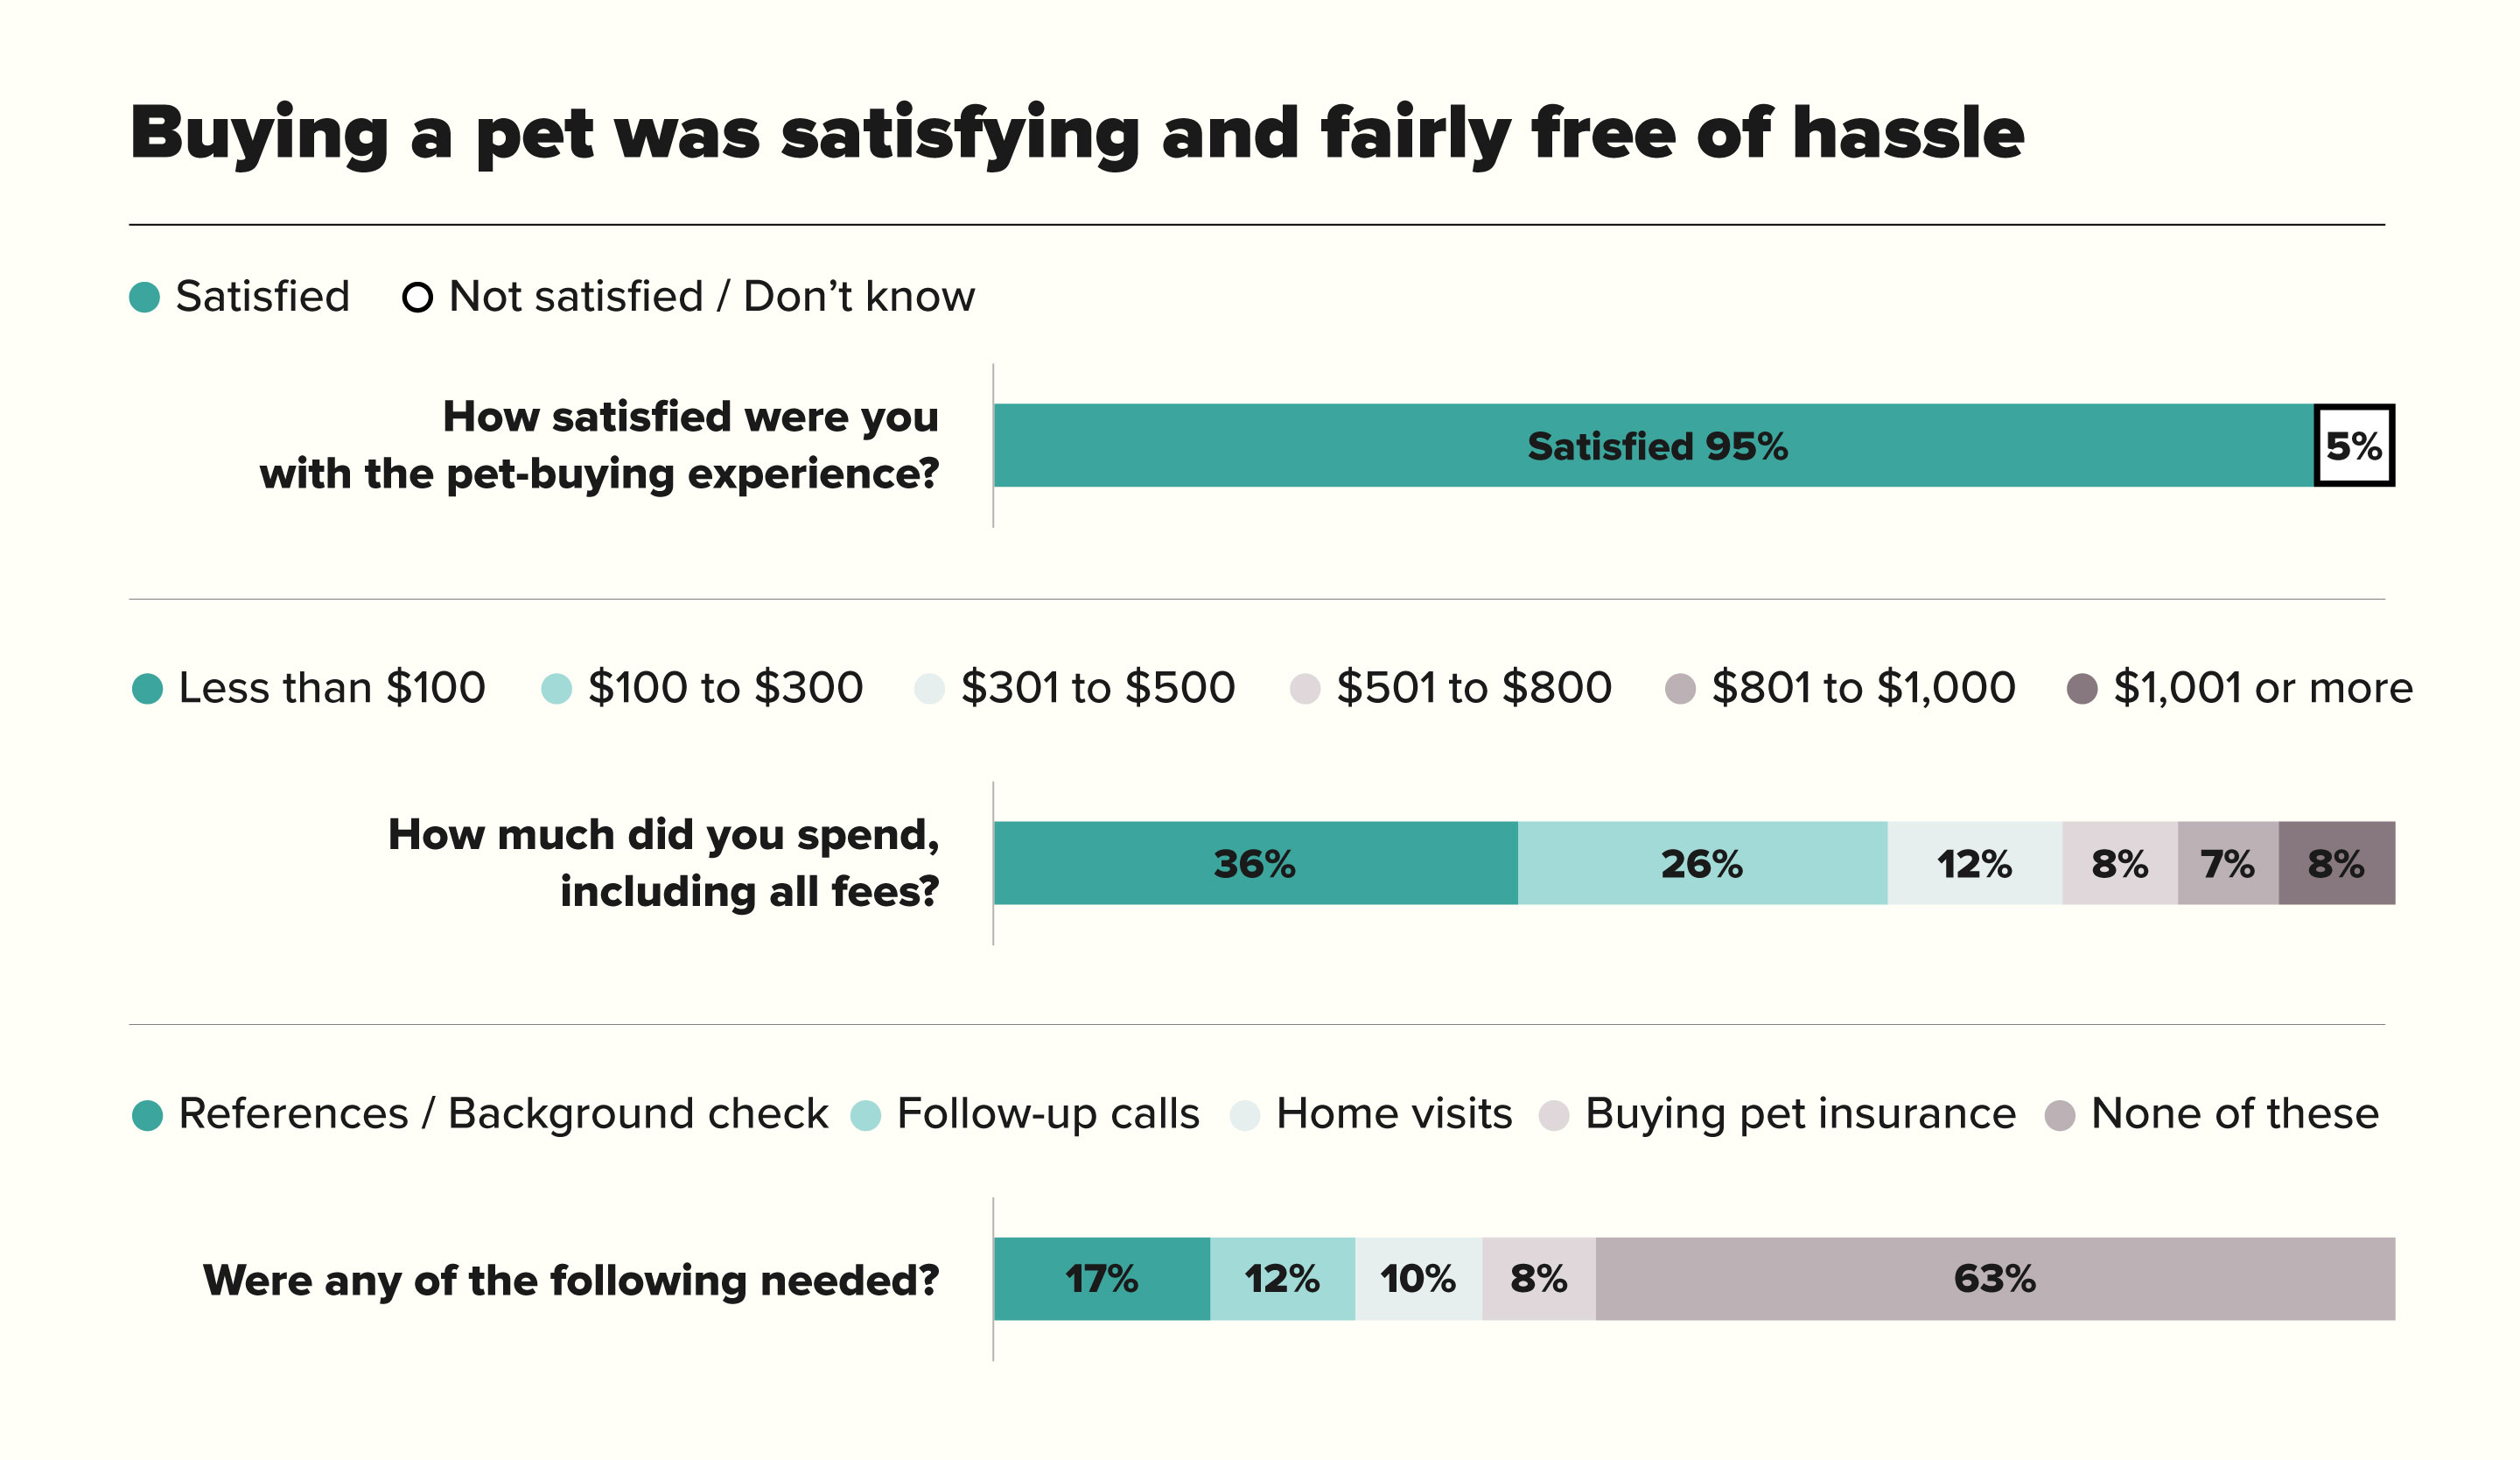 Buying A Pet Was Satisfying And Fairly Free Of Hassle Chart